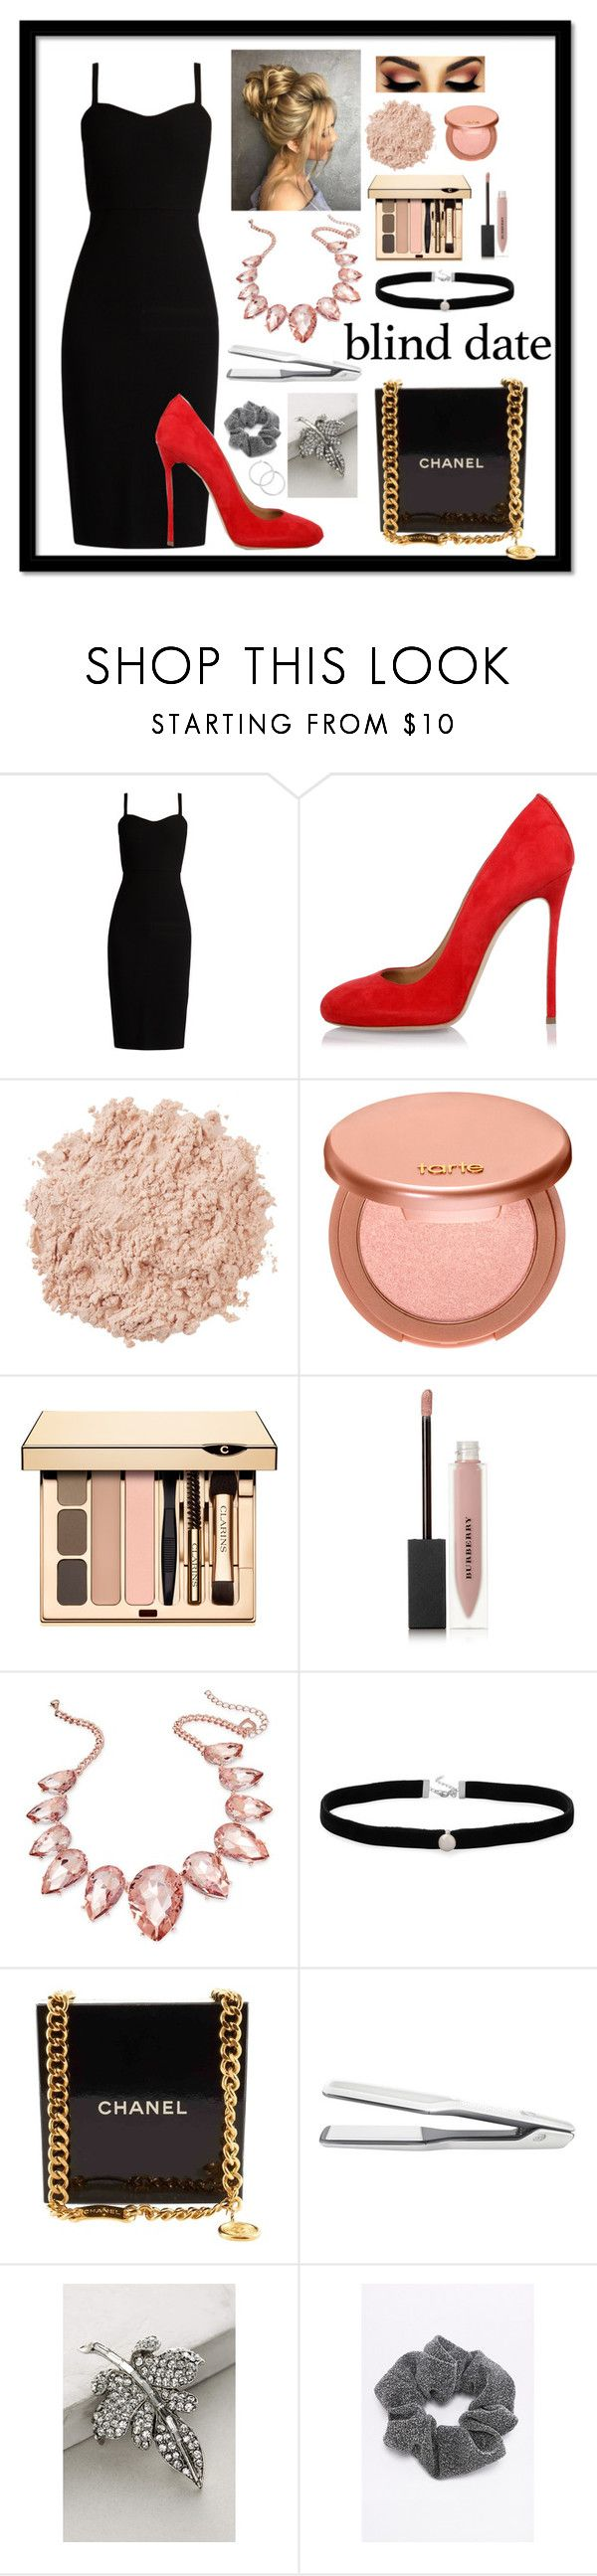 """""""Lil' black dress"""" by ma3-w3iss ❤ liked on Polyvore featuring MaxMara, Dsquared2, La Mer, tarte, Burberry, Thalia Sodi, Amanda Rose Collection, Chanel, T3 and Miss Ellie"""